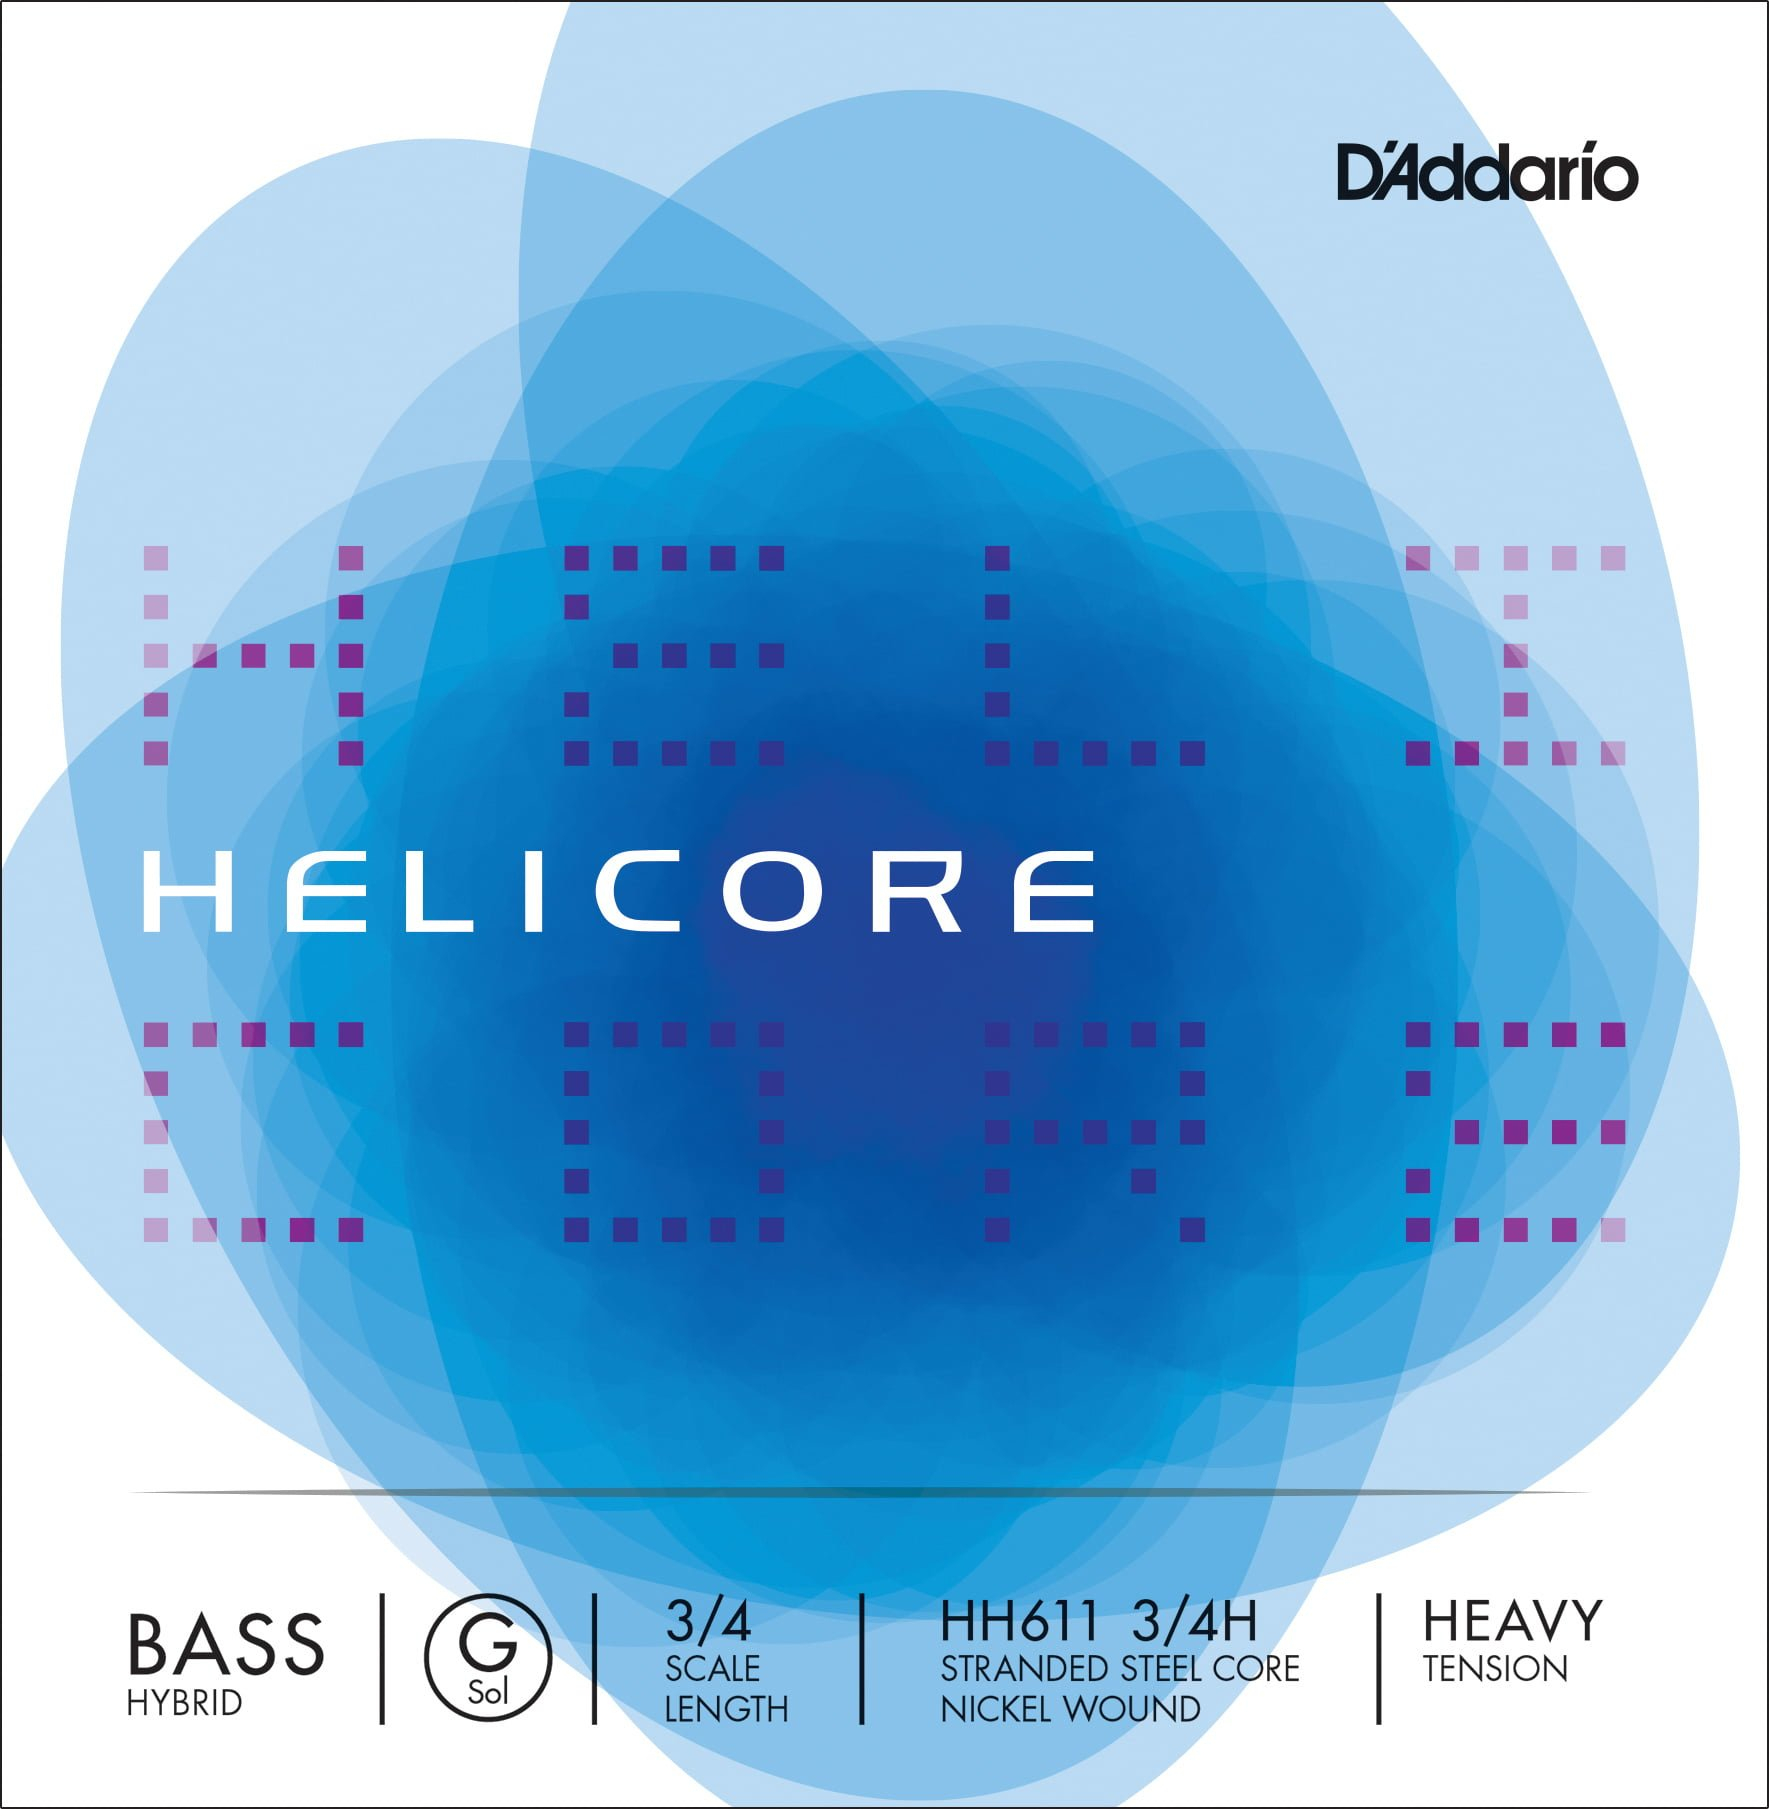 Helicore Hybrid Double Bass G String 3/4 High